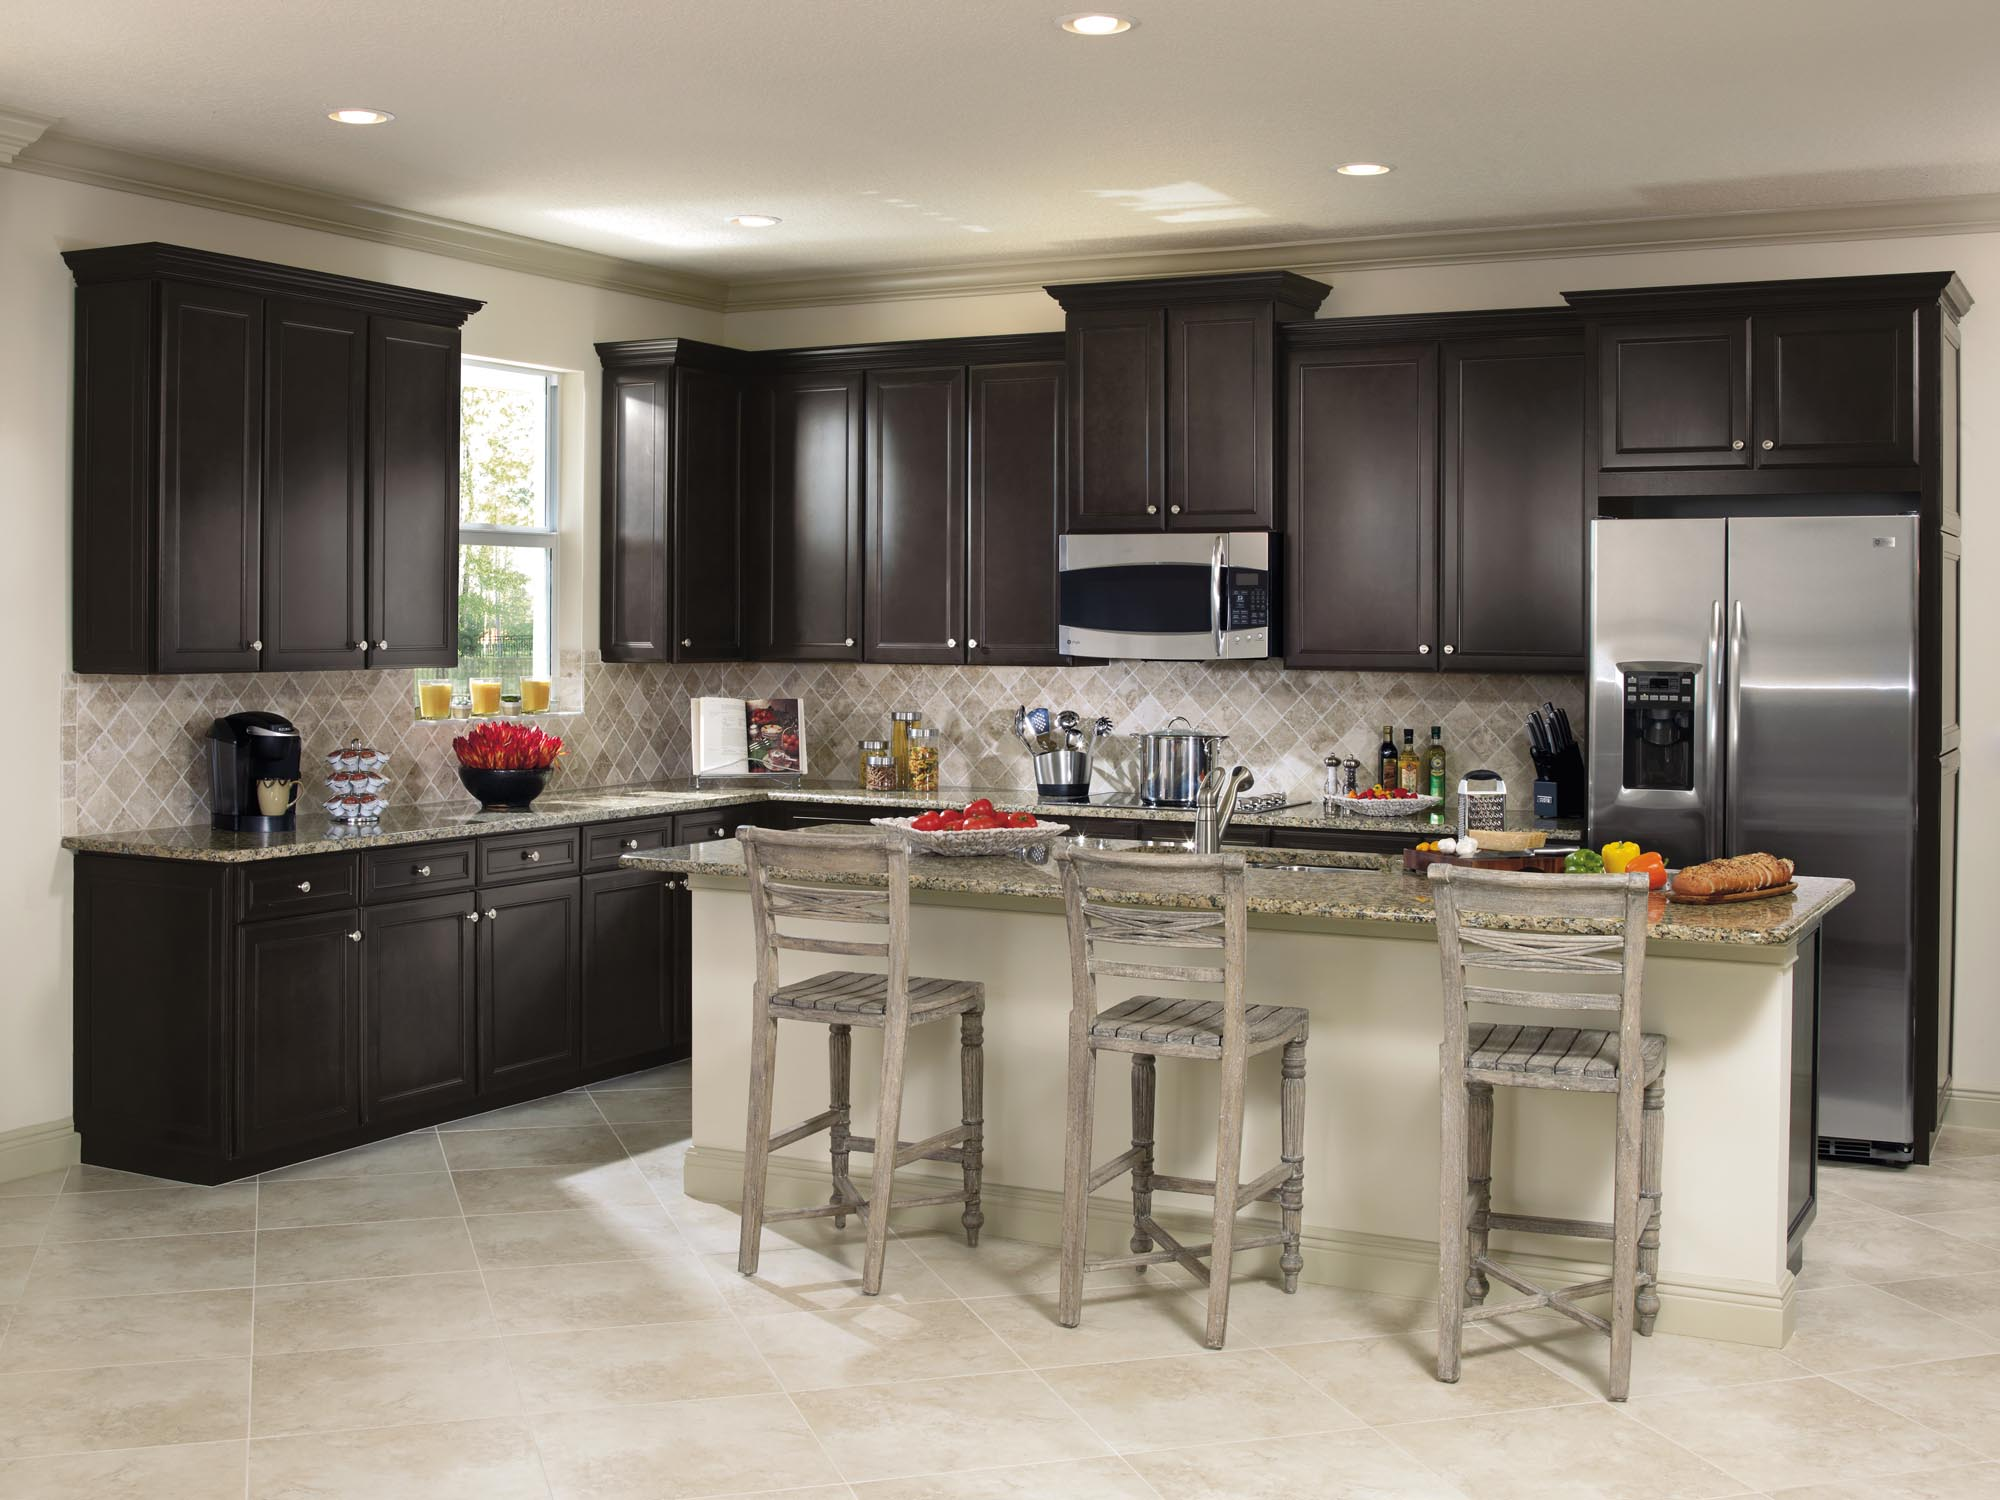 Incroyable Melbourne Florida Kitchen And Bath Cabinets And Countertops Hammond Kitchen  And Bath Brevard Florida